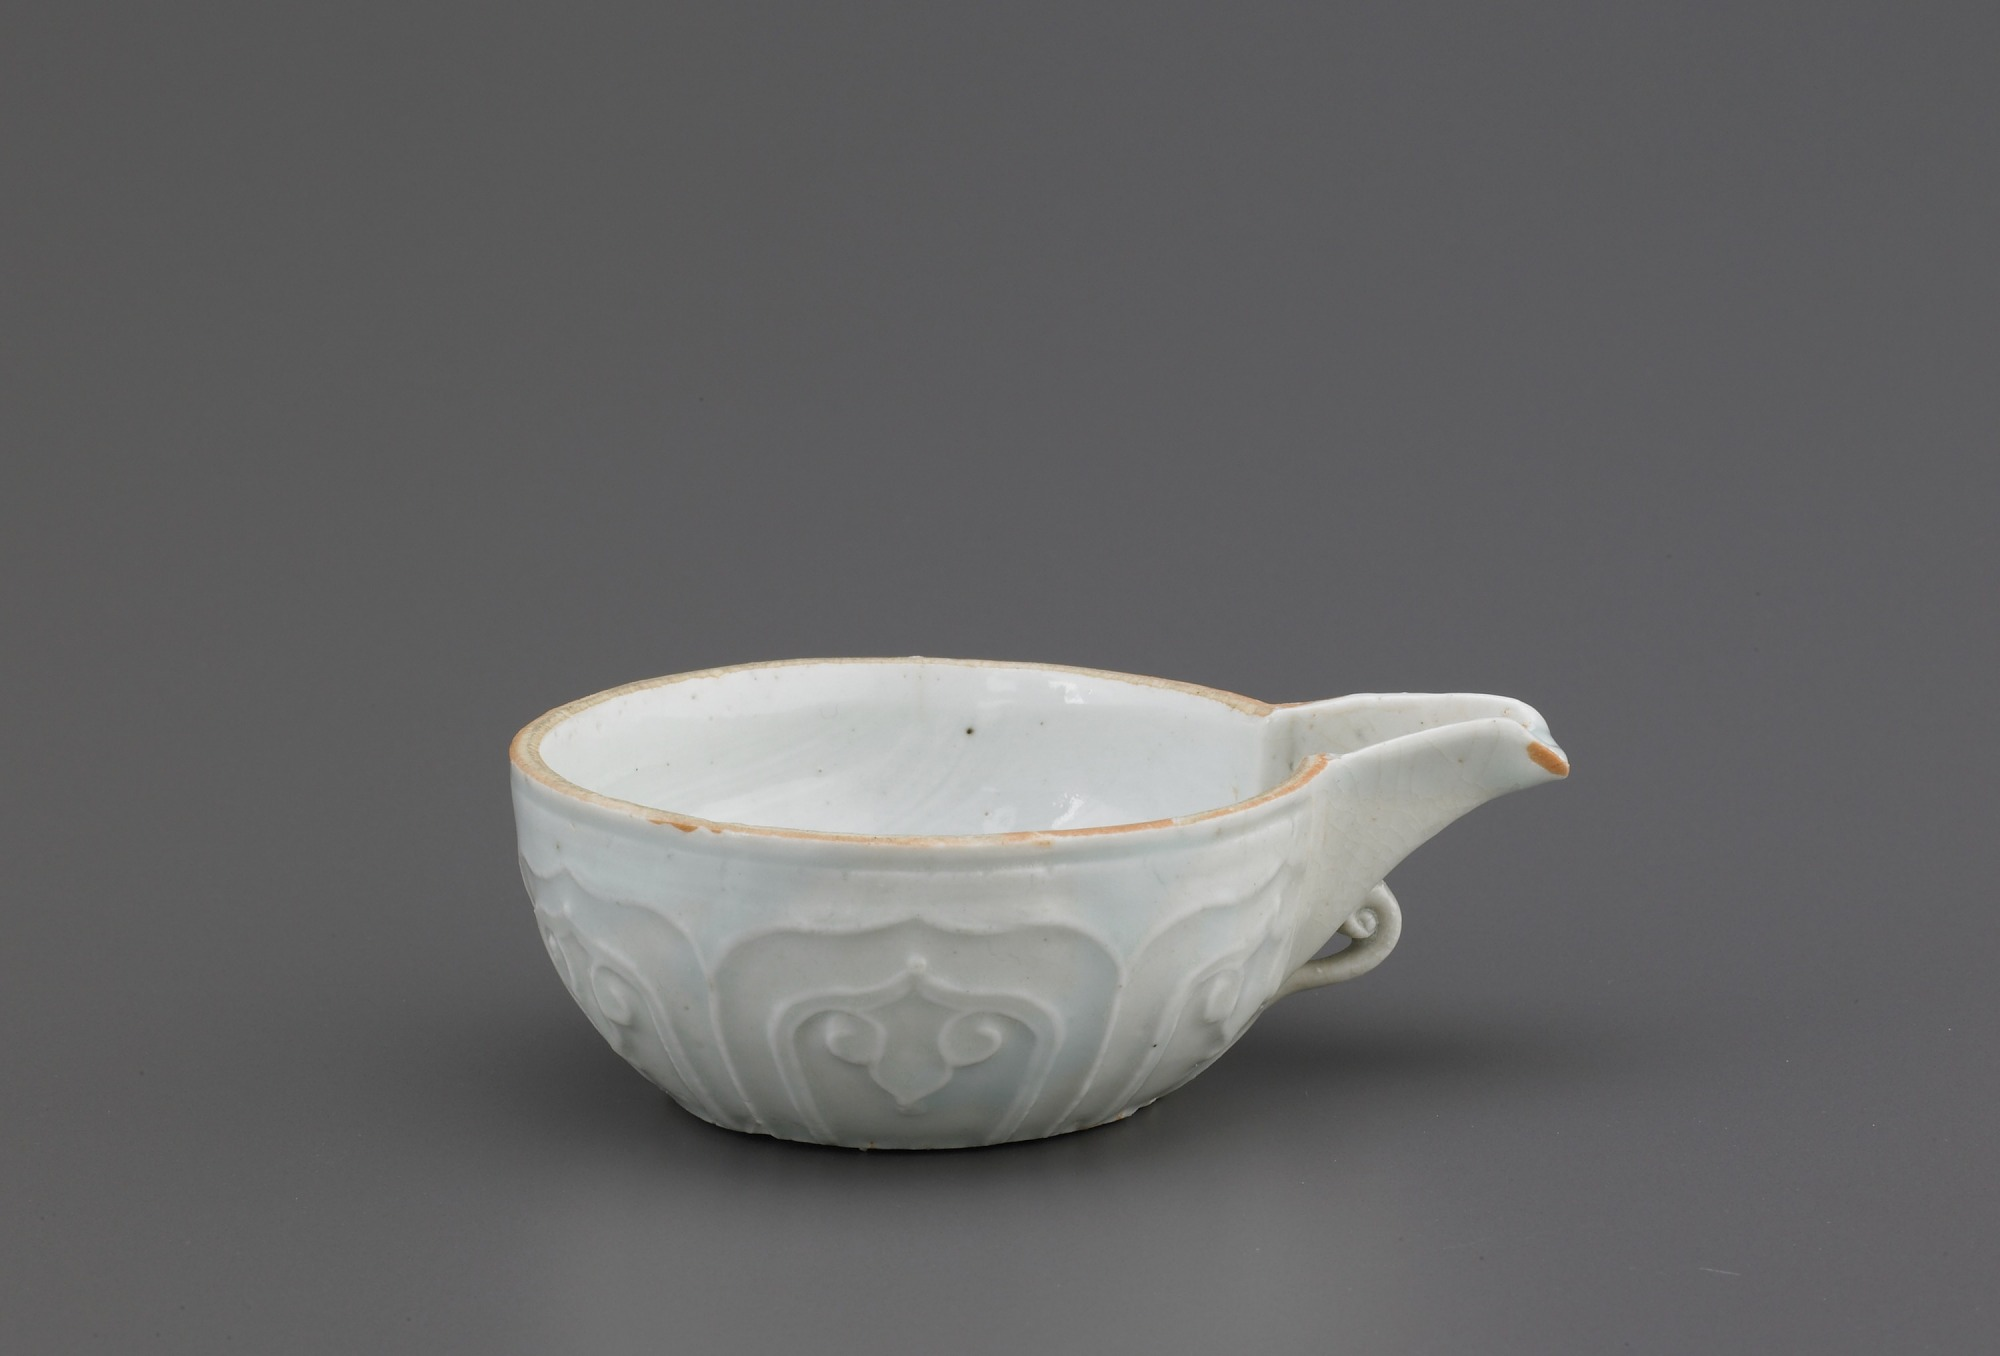 Spouted bowl with molded decoration